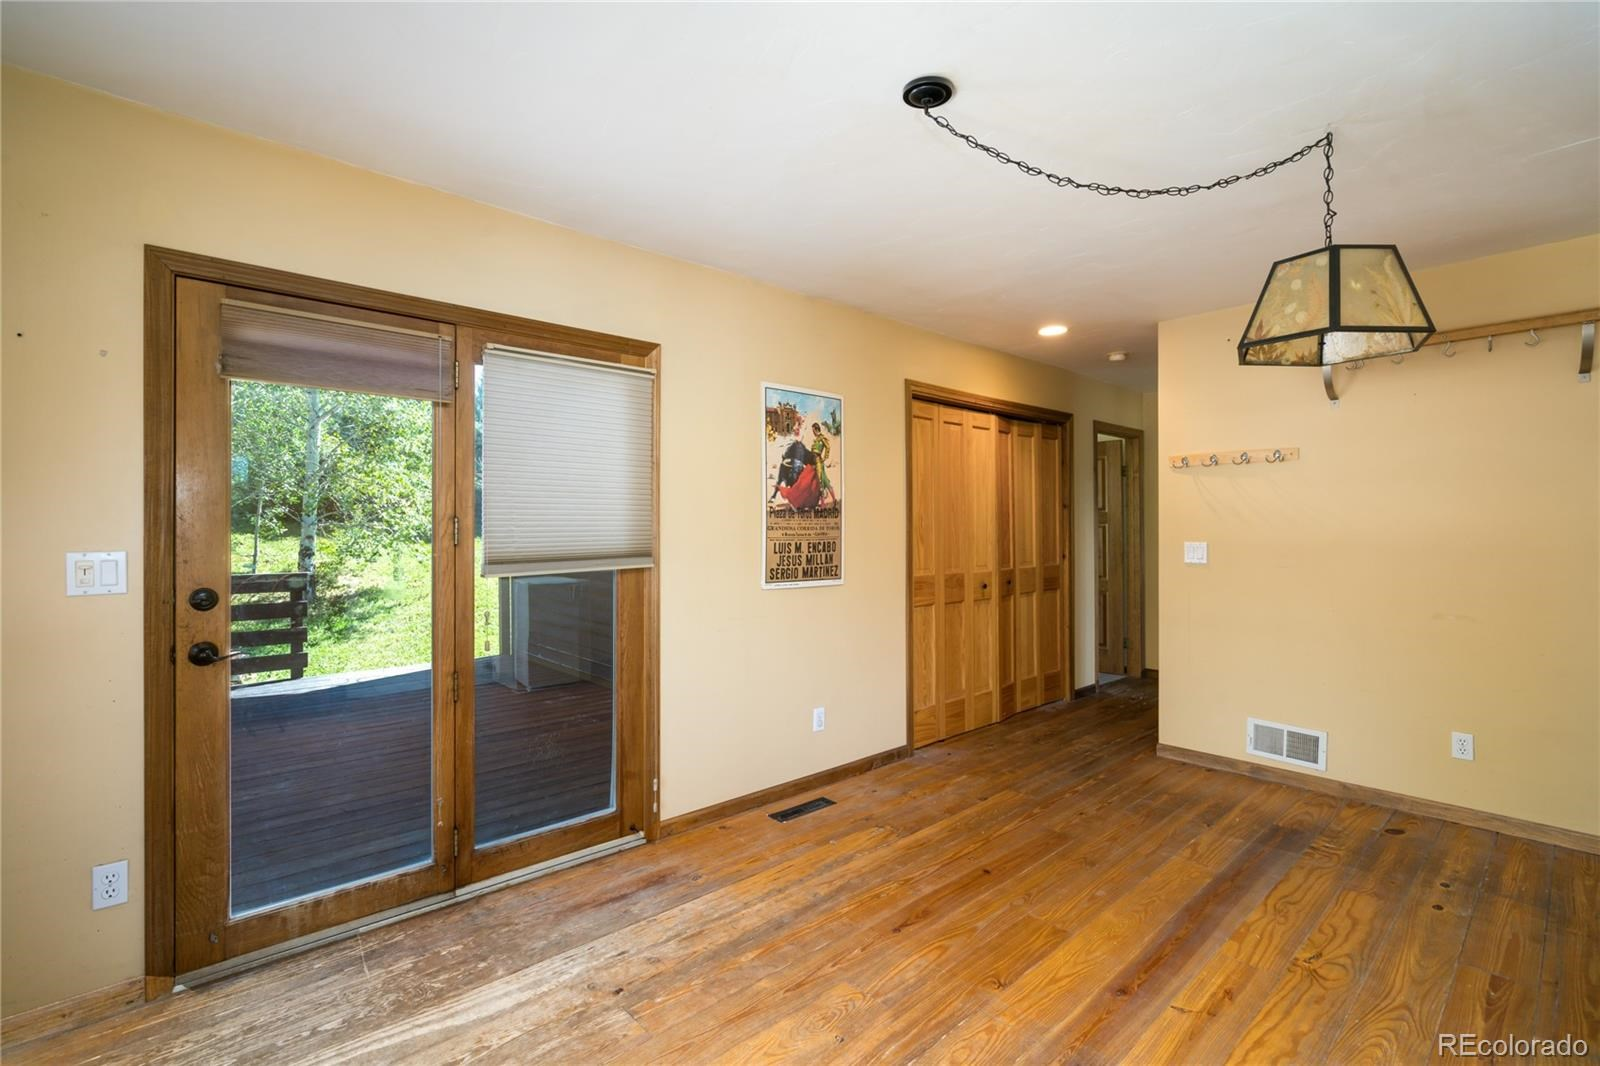 MLS# 3817598 - 5 - 404 Lupine Drive, Steamboat Springs, CO 80487